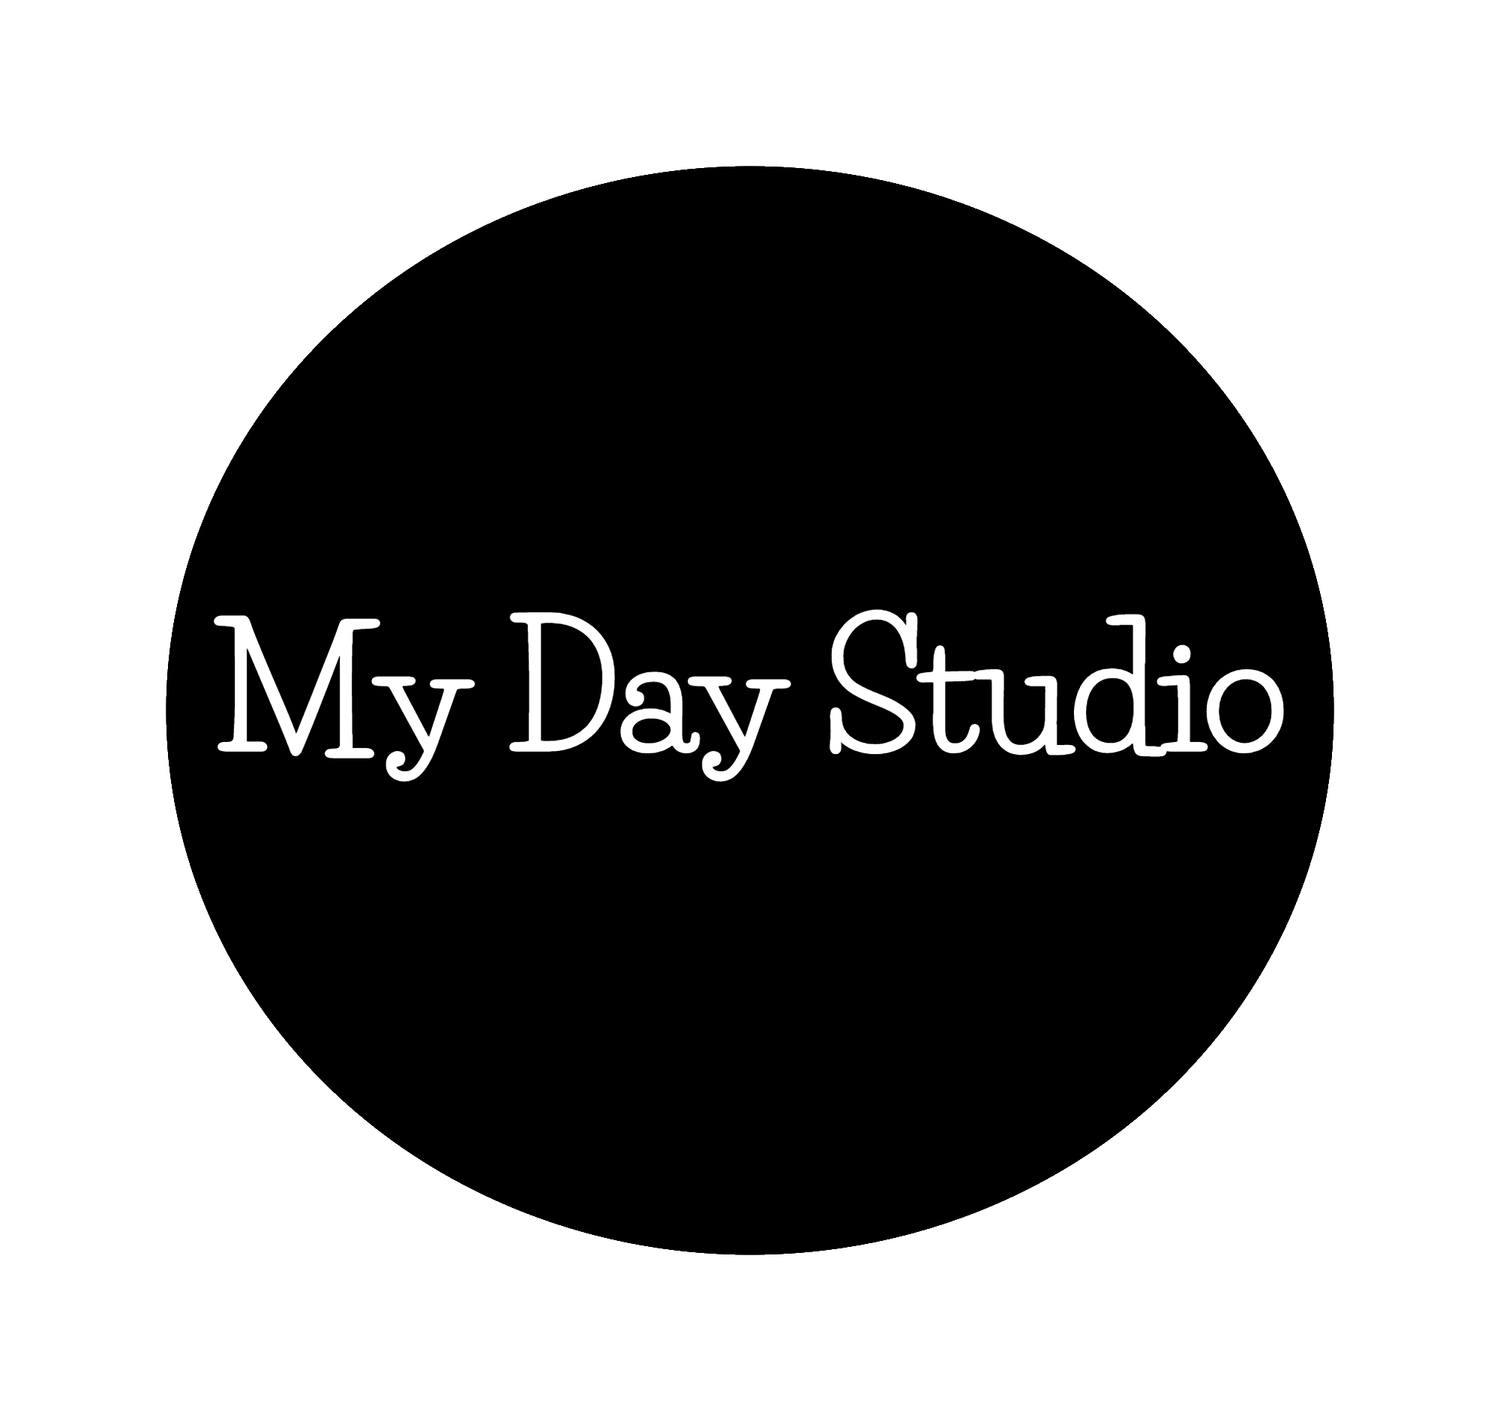 My Day Studio